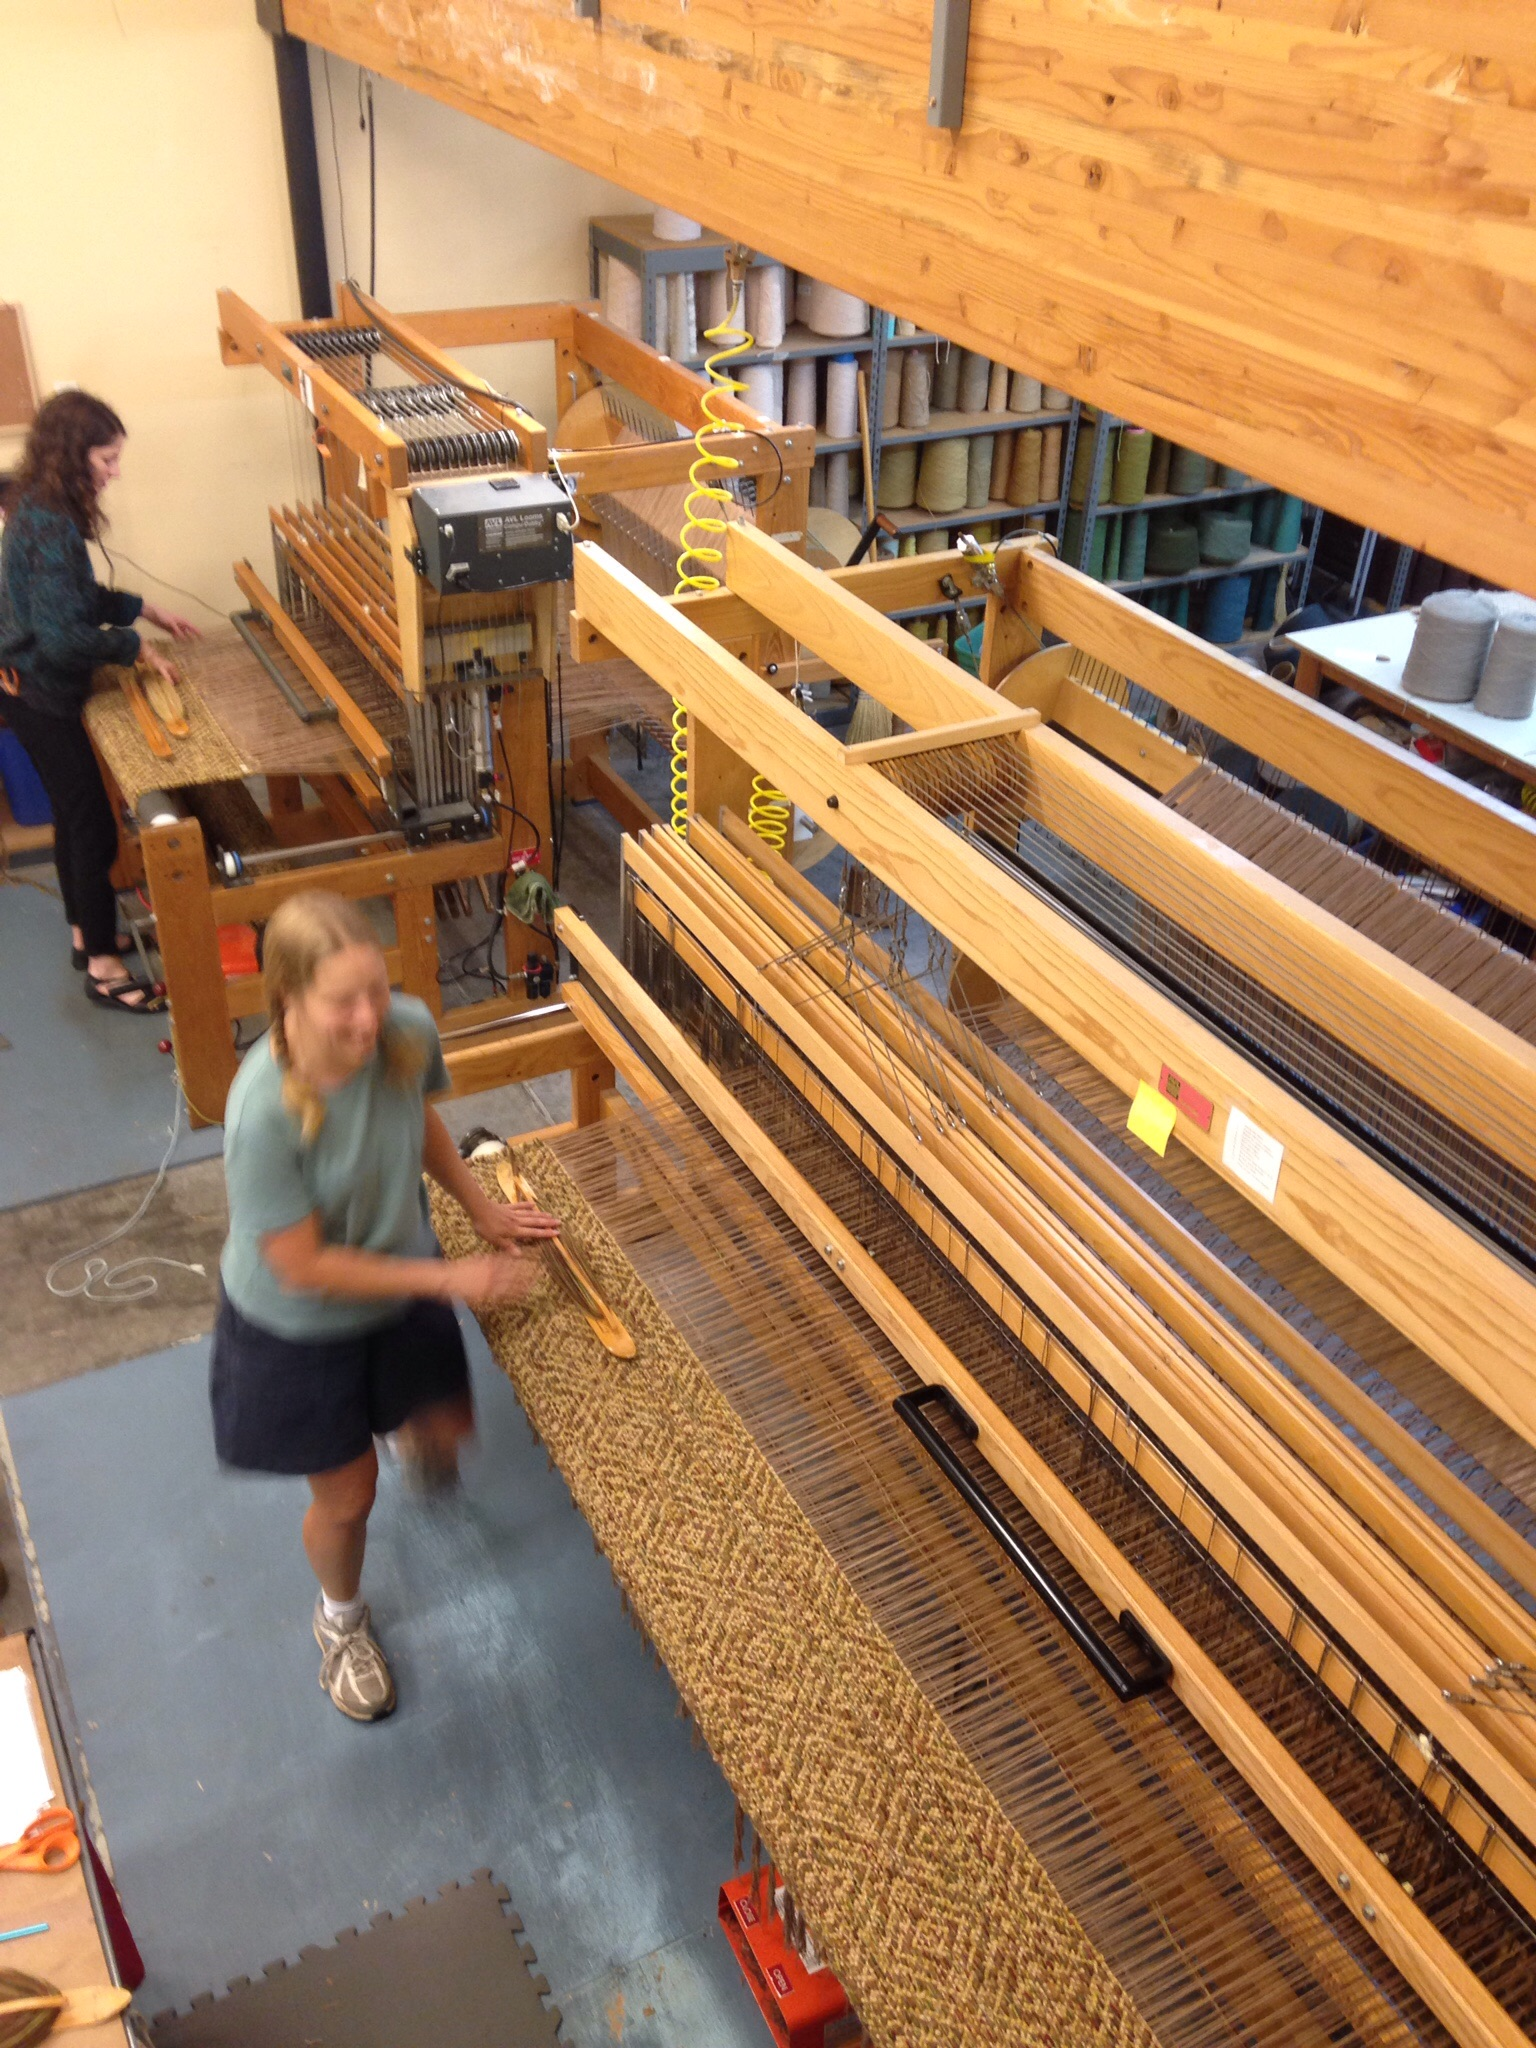 Aurora and Meg weaving rugs.